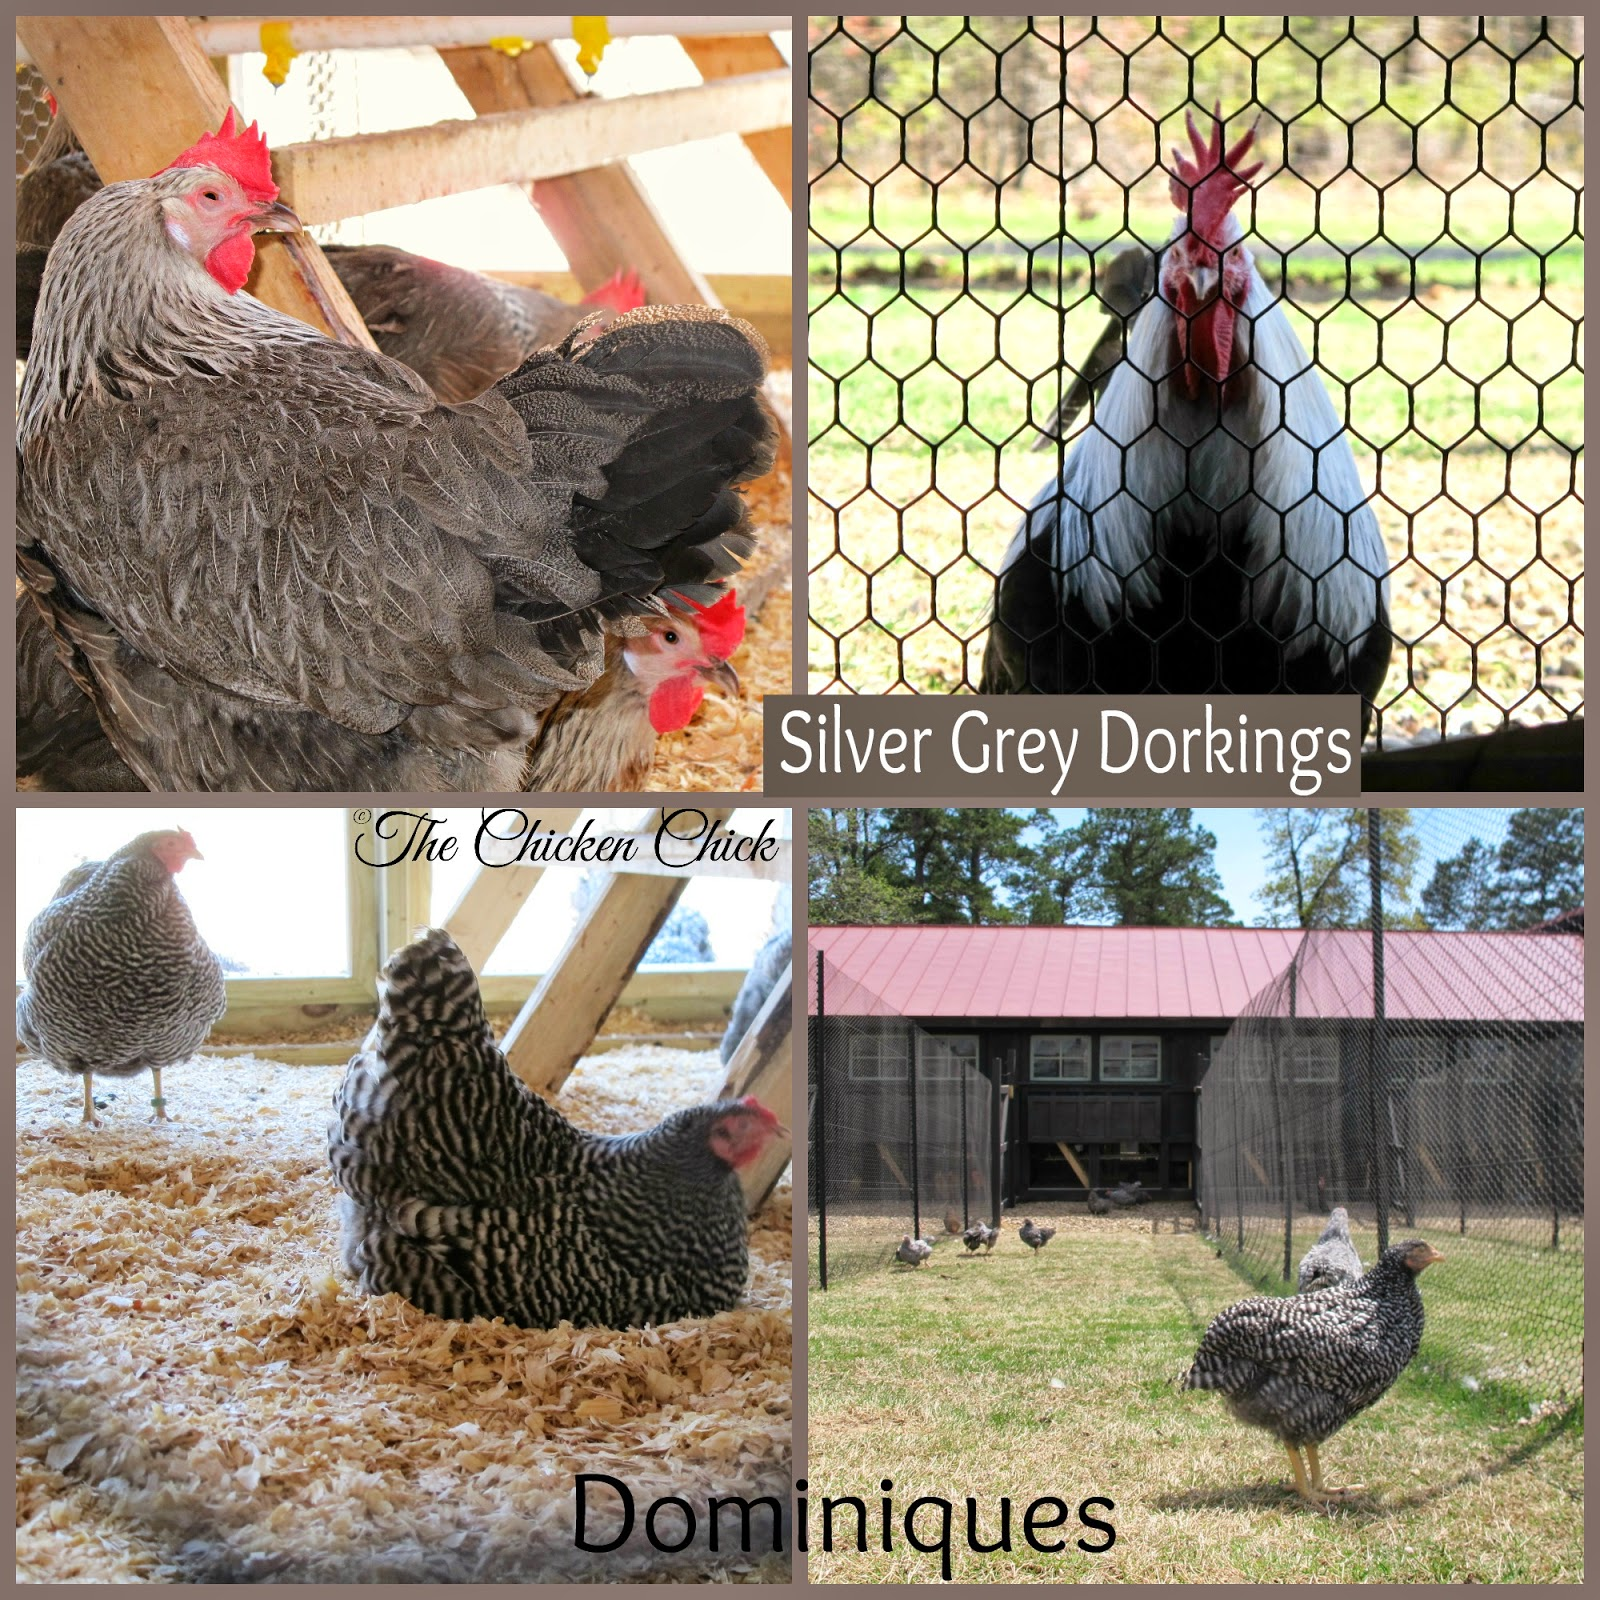 Silver Grey Dorking chickens and Dominique chickens in Poultryville